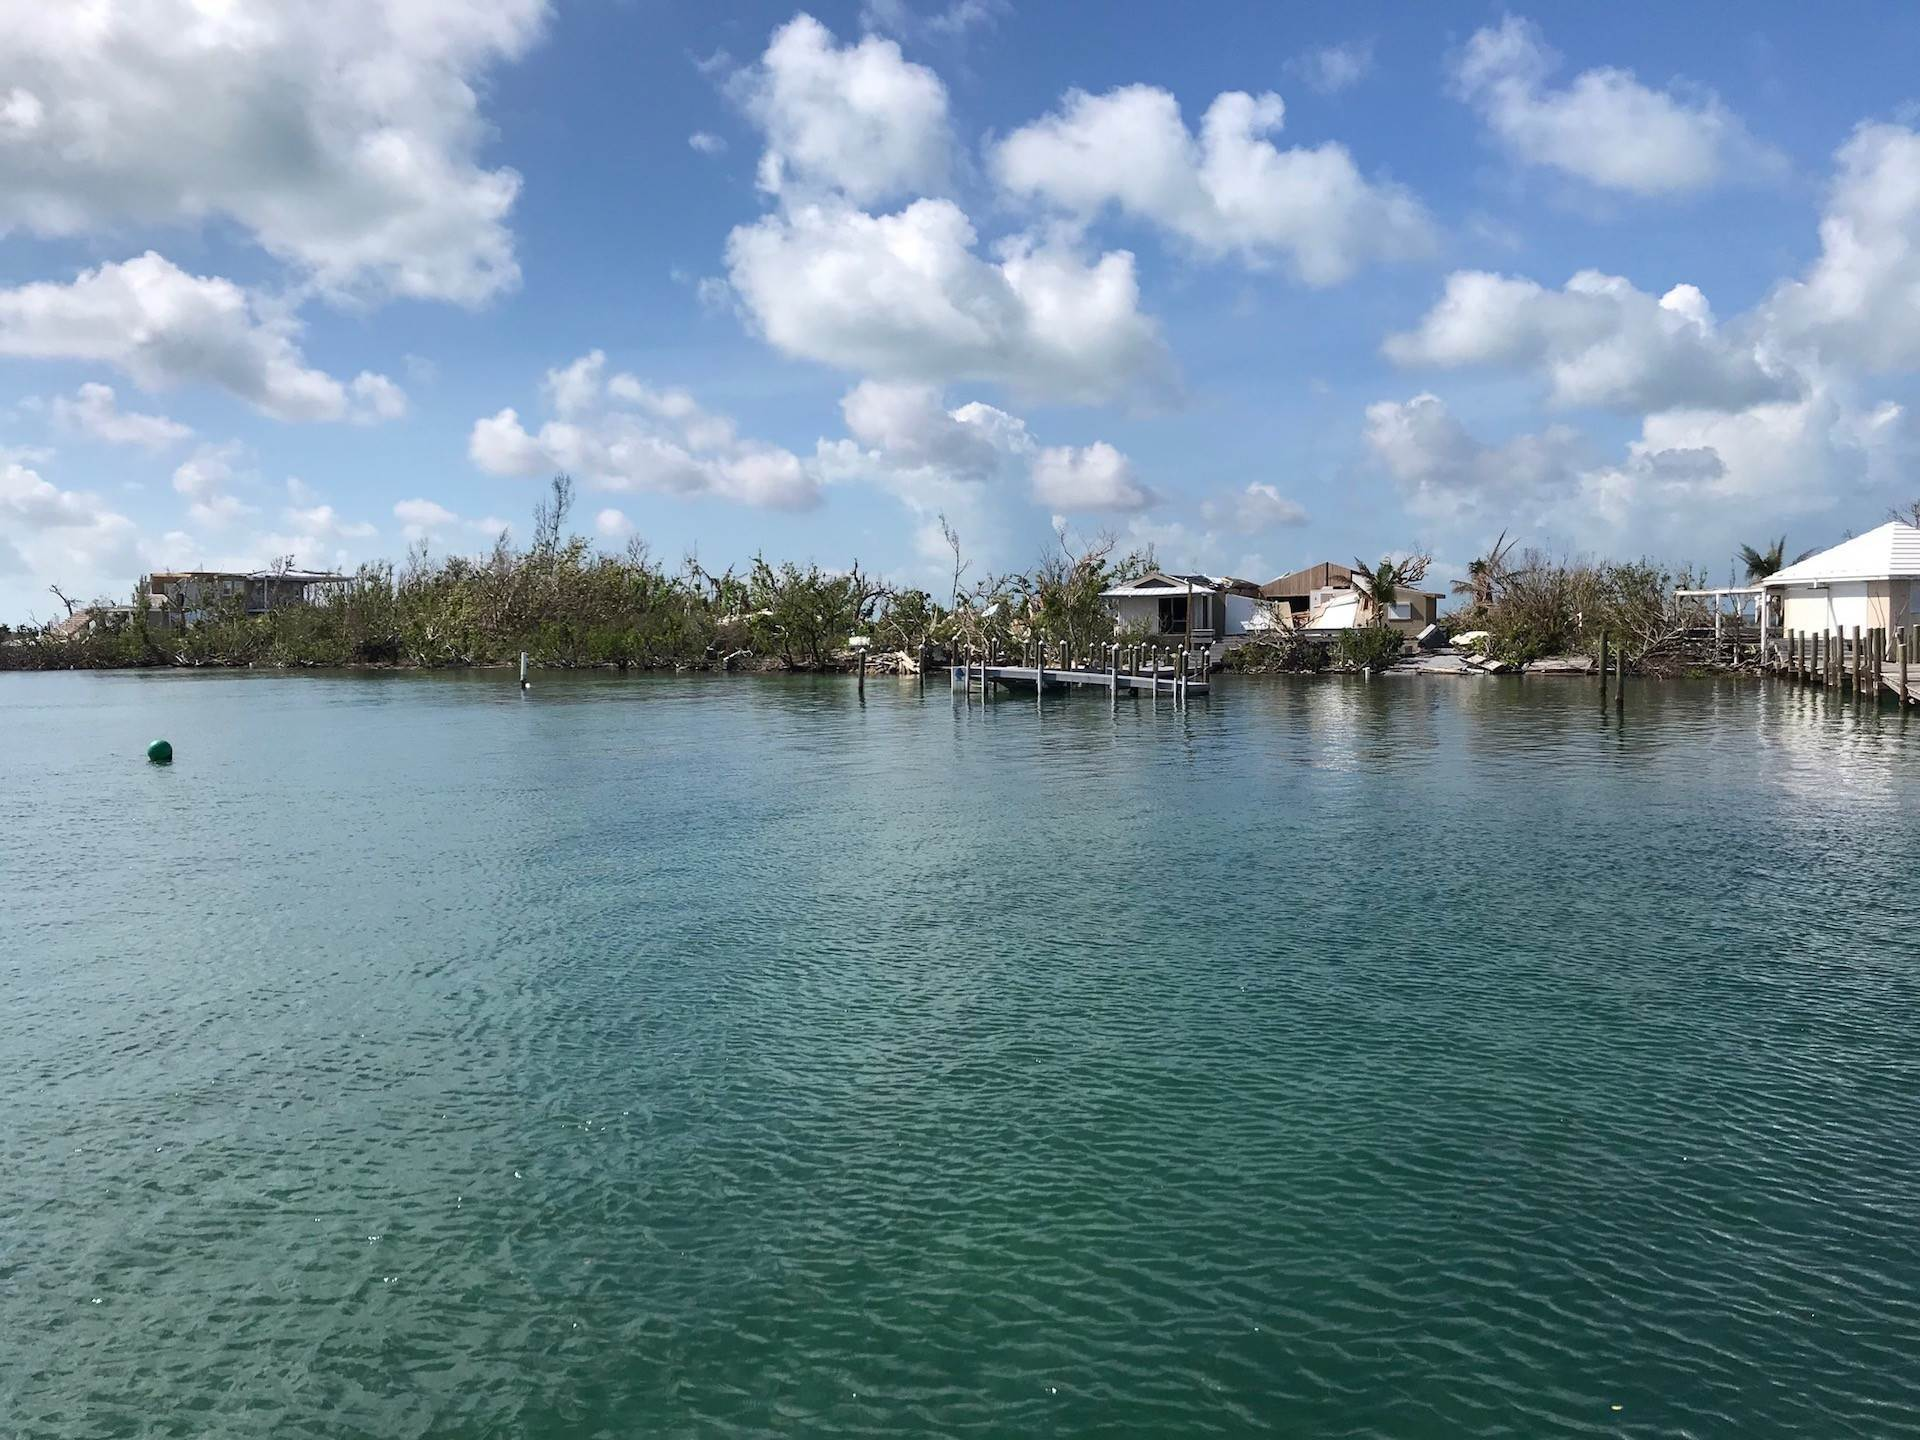 4. Land / Lots for Sale at Deck House Property - MLS 43732 Green Turtle Cay, Abaco, Bahamas